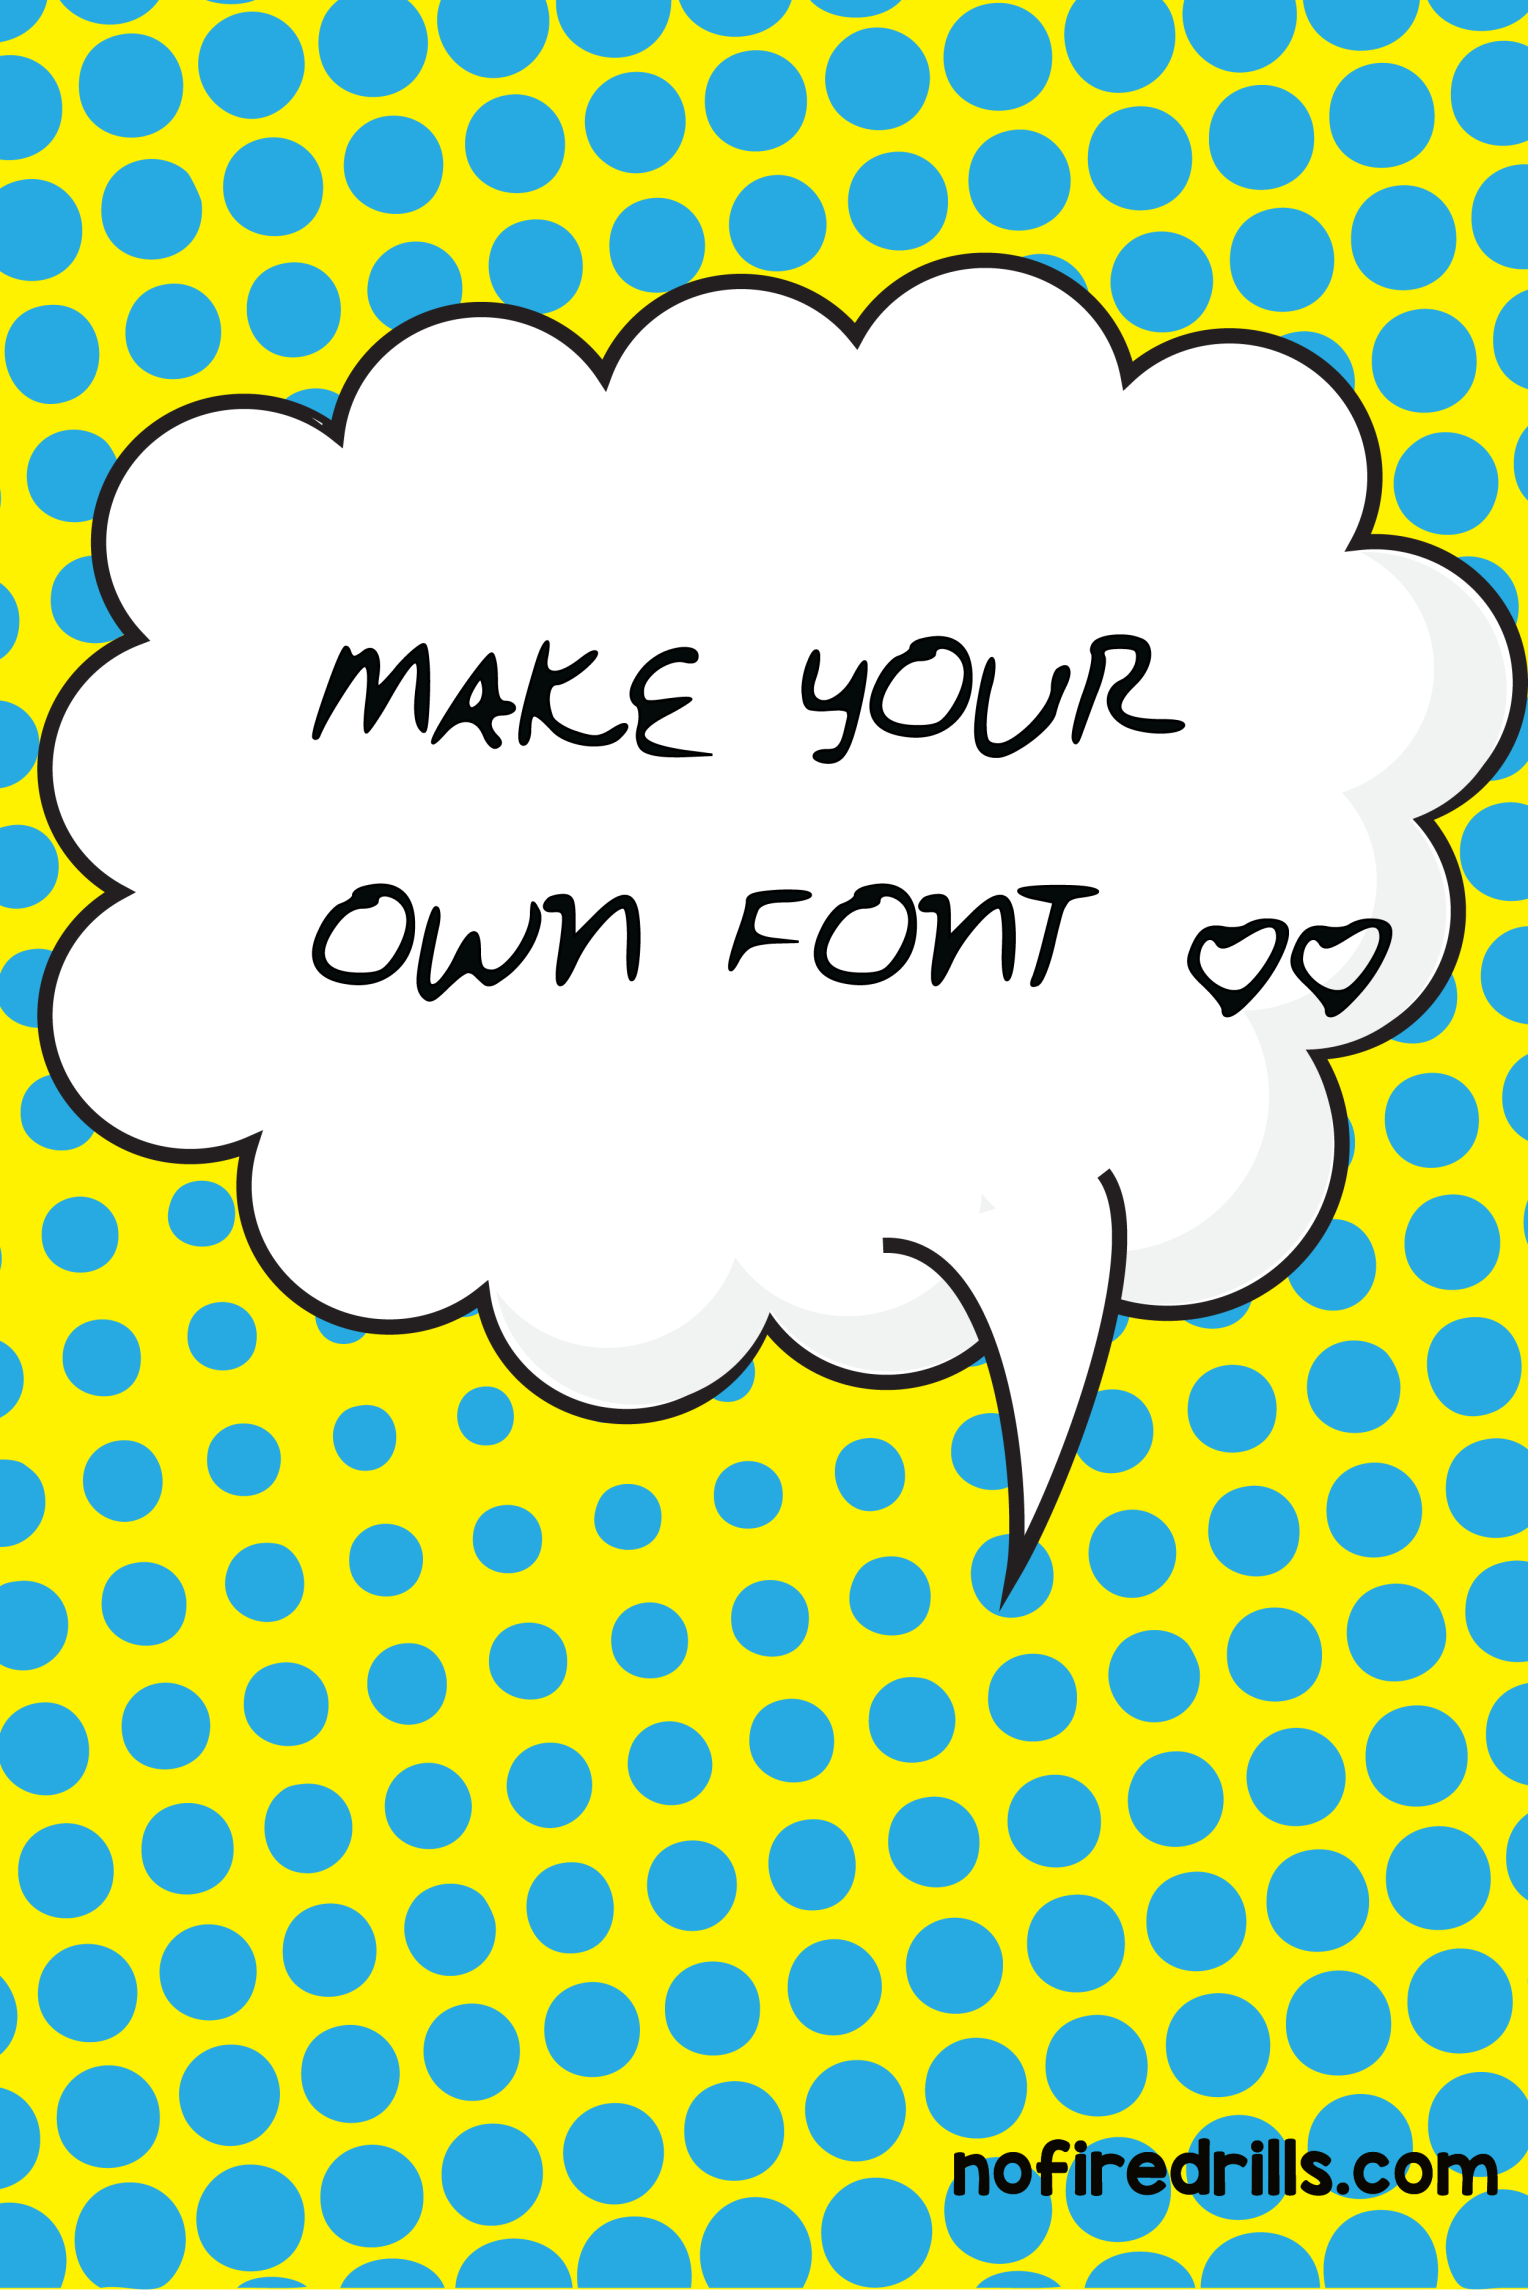 Make Your Own Handwriting Font